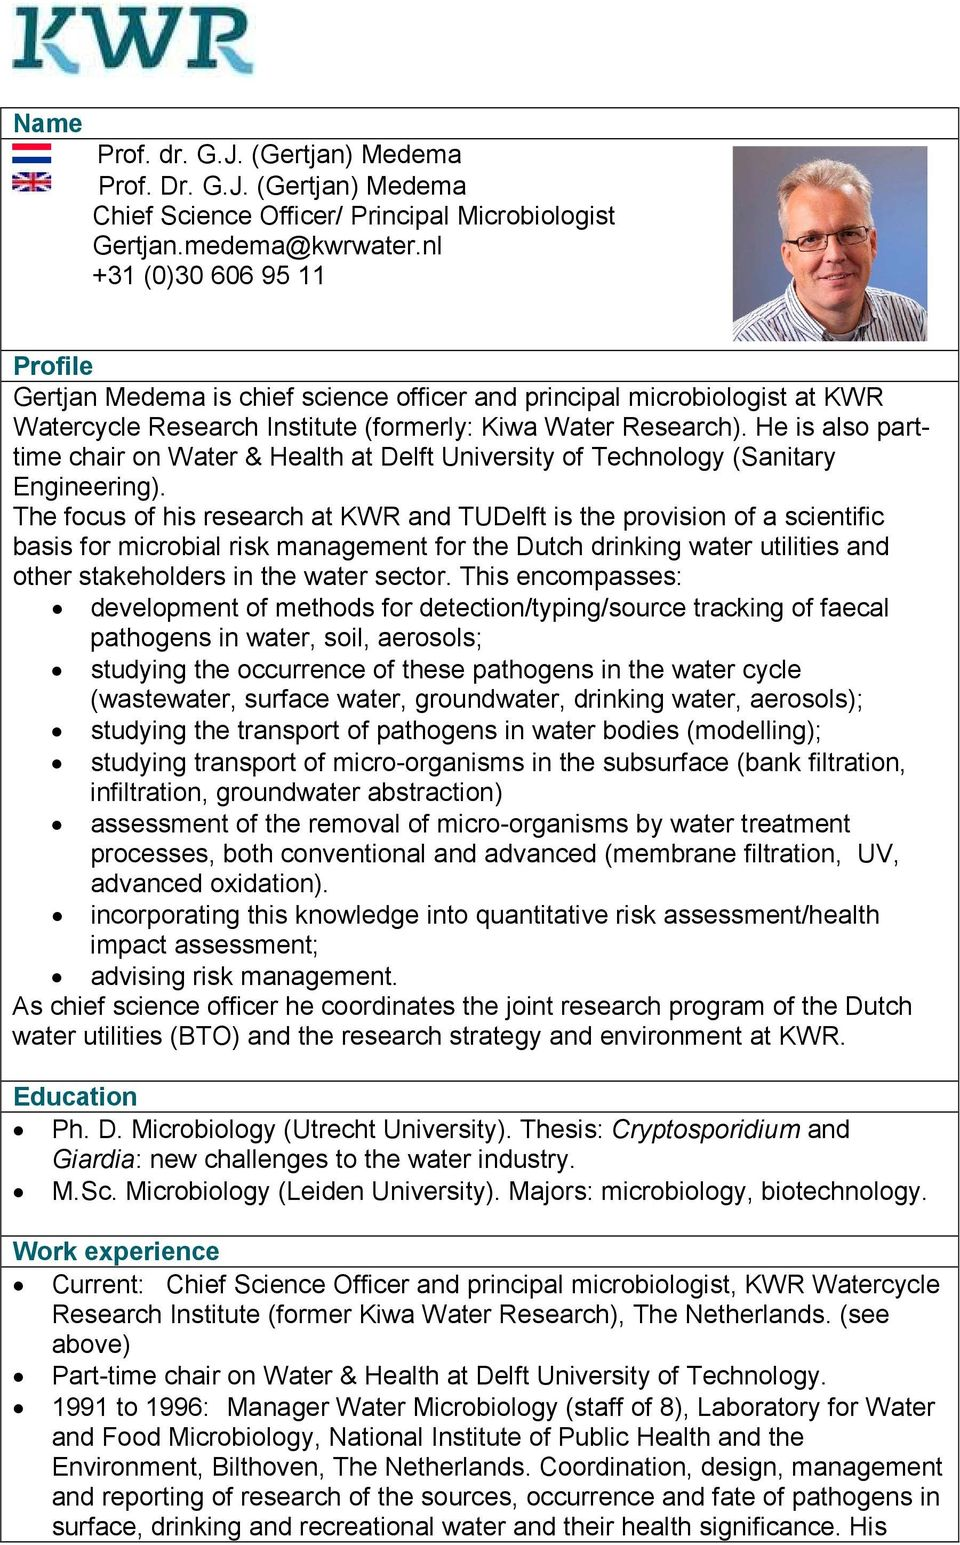 He is also parttime chair on Water & Health at Delft University of Technology (Sanitary Engineering).